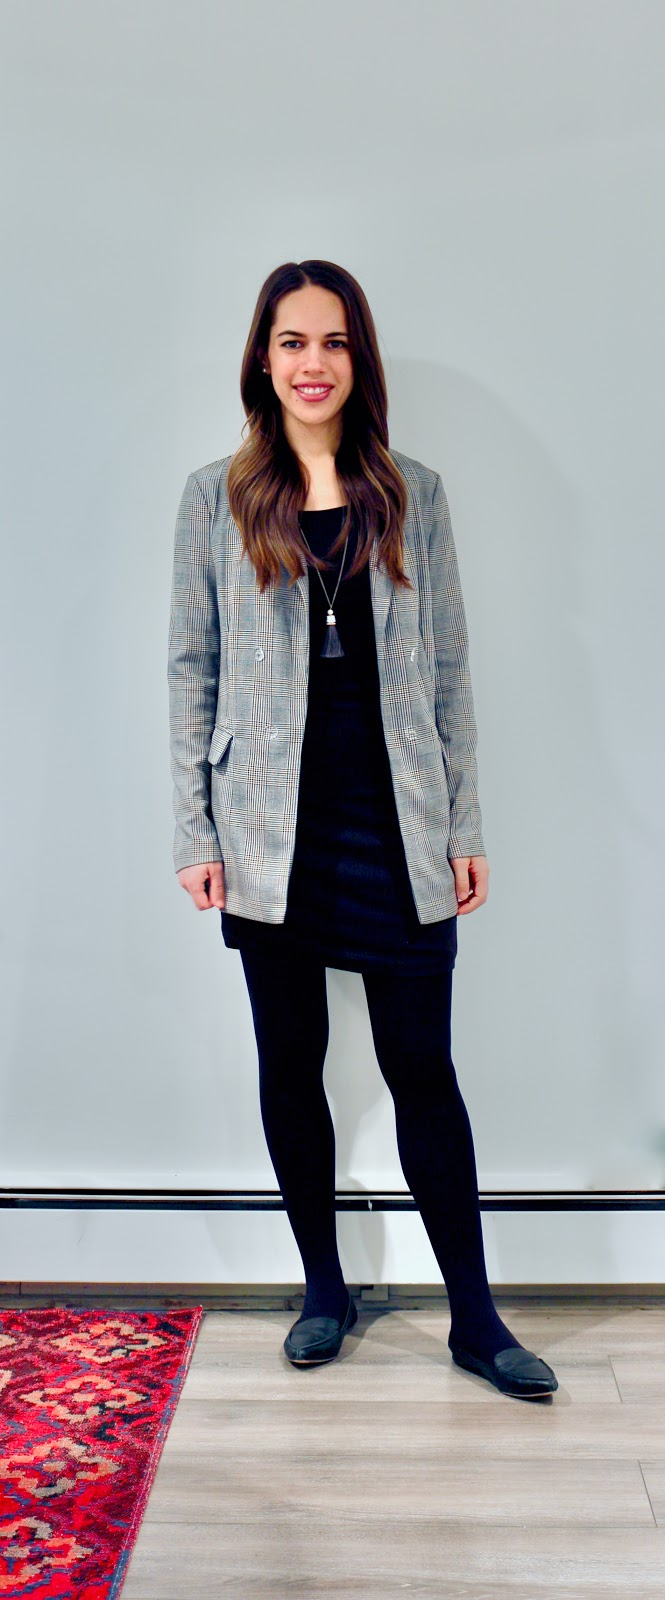 Jules in Flats - T-Shirt Dress + Oversized Plaid Blazer (Business Casual Winter Workwear on a Budget)